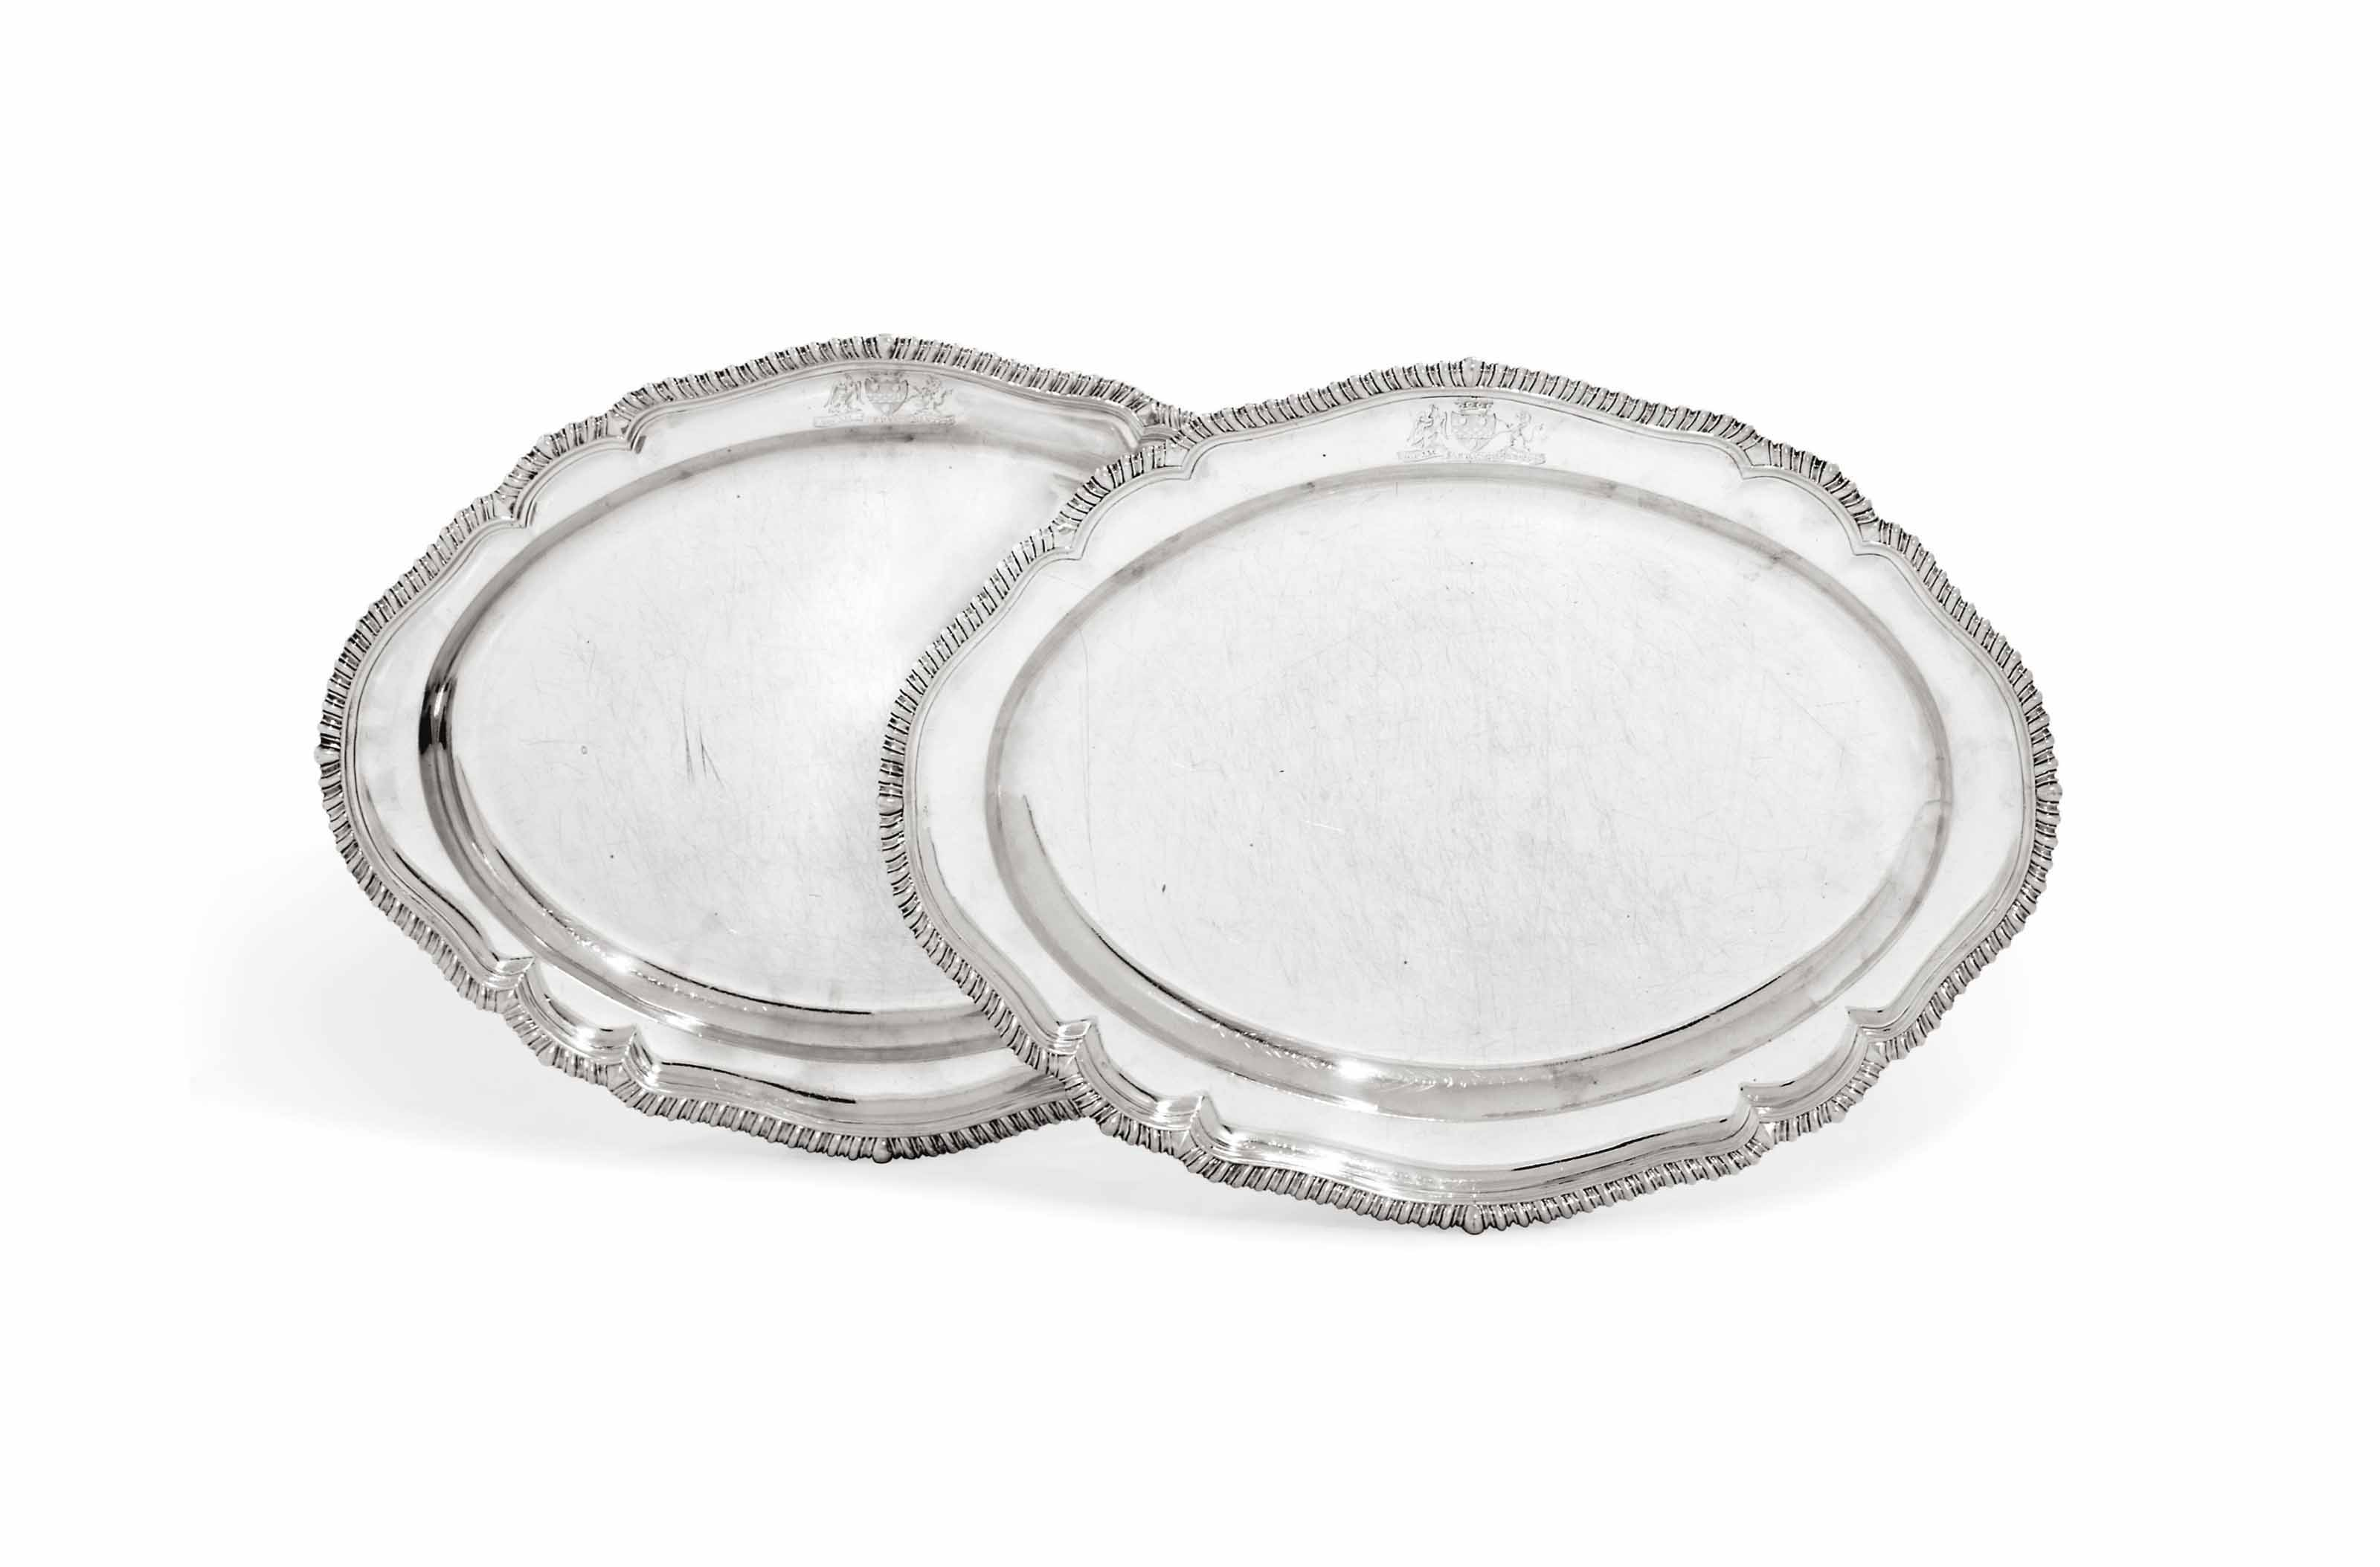 TWO GEORGE II SILVER MEAT-DISHES